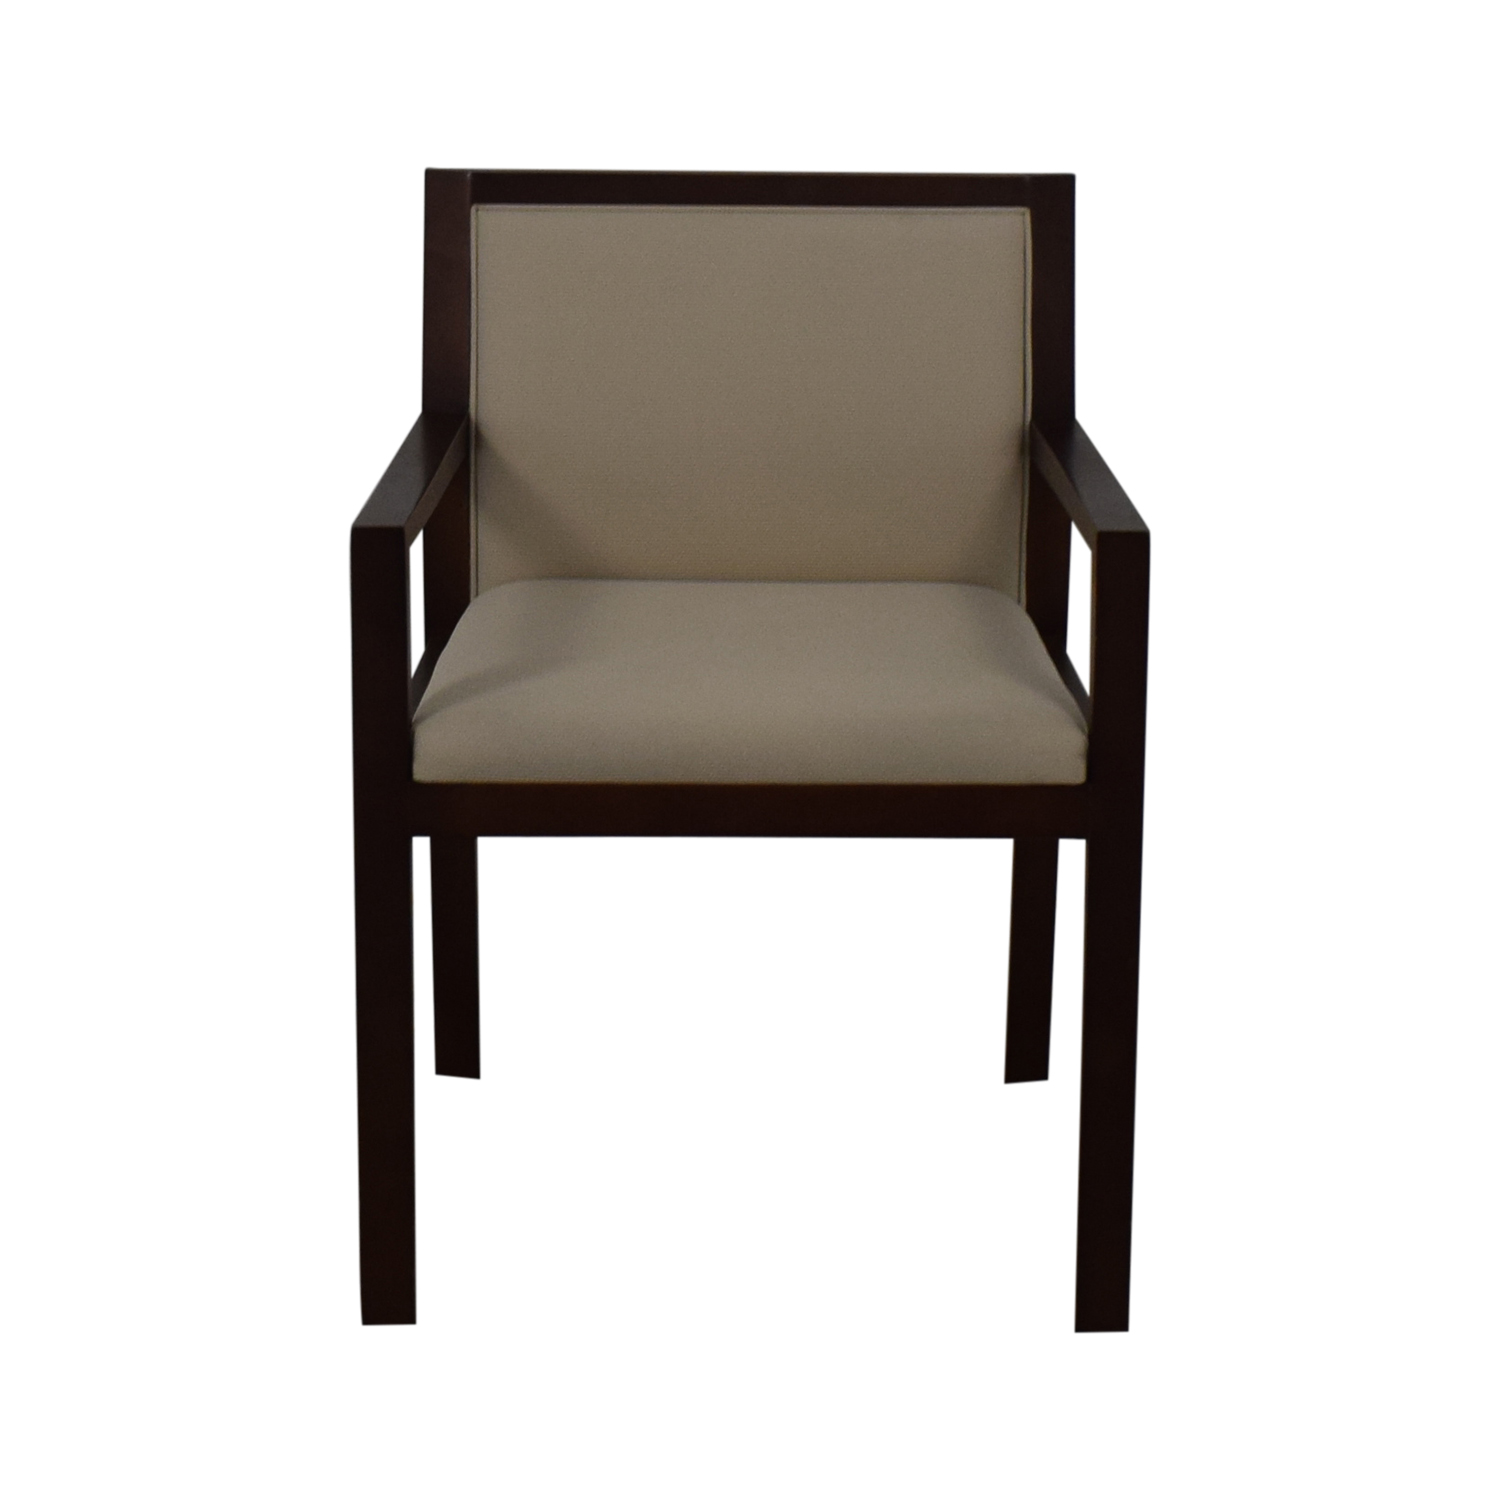 Bernhardt Fabric Desk Chair sale